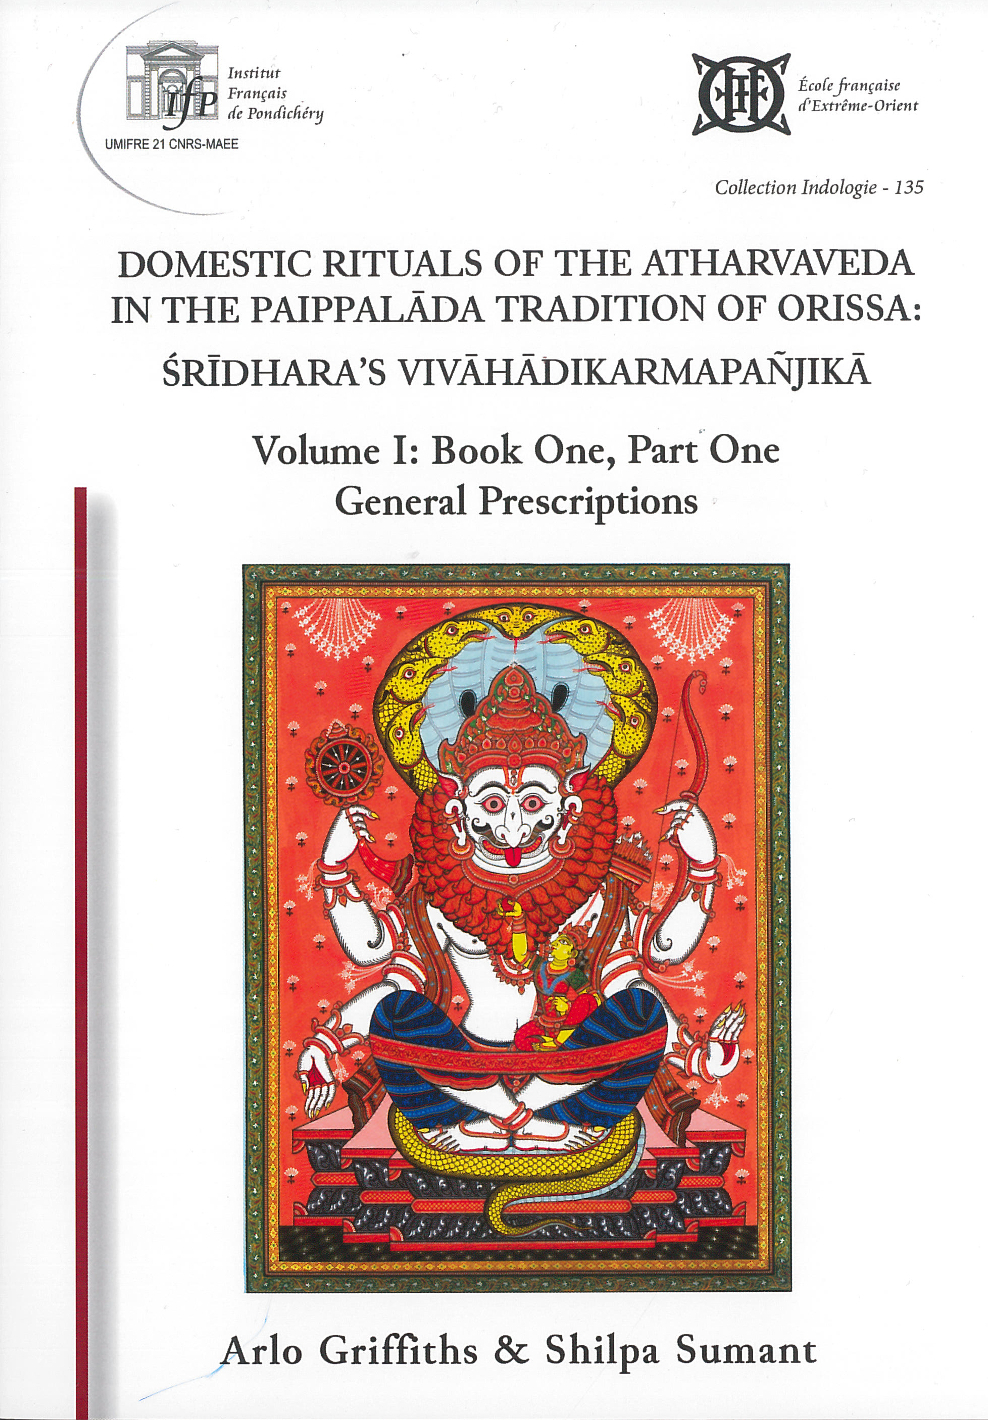 Domestic Rituals of the Atharvaveda in the Paippalāda Tradition of Orissa: Śrīdhara's Vivāhādikarmapañjikā